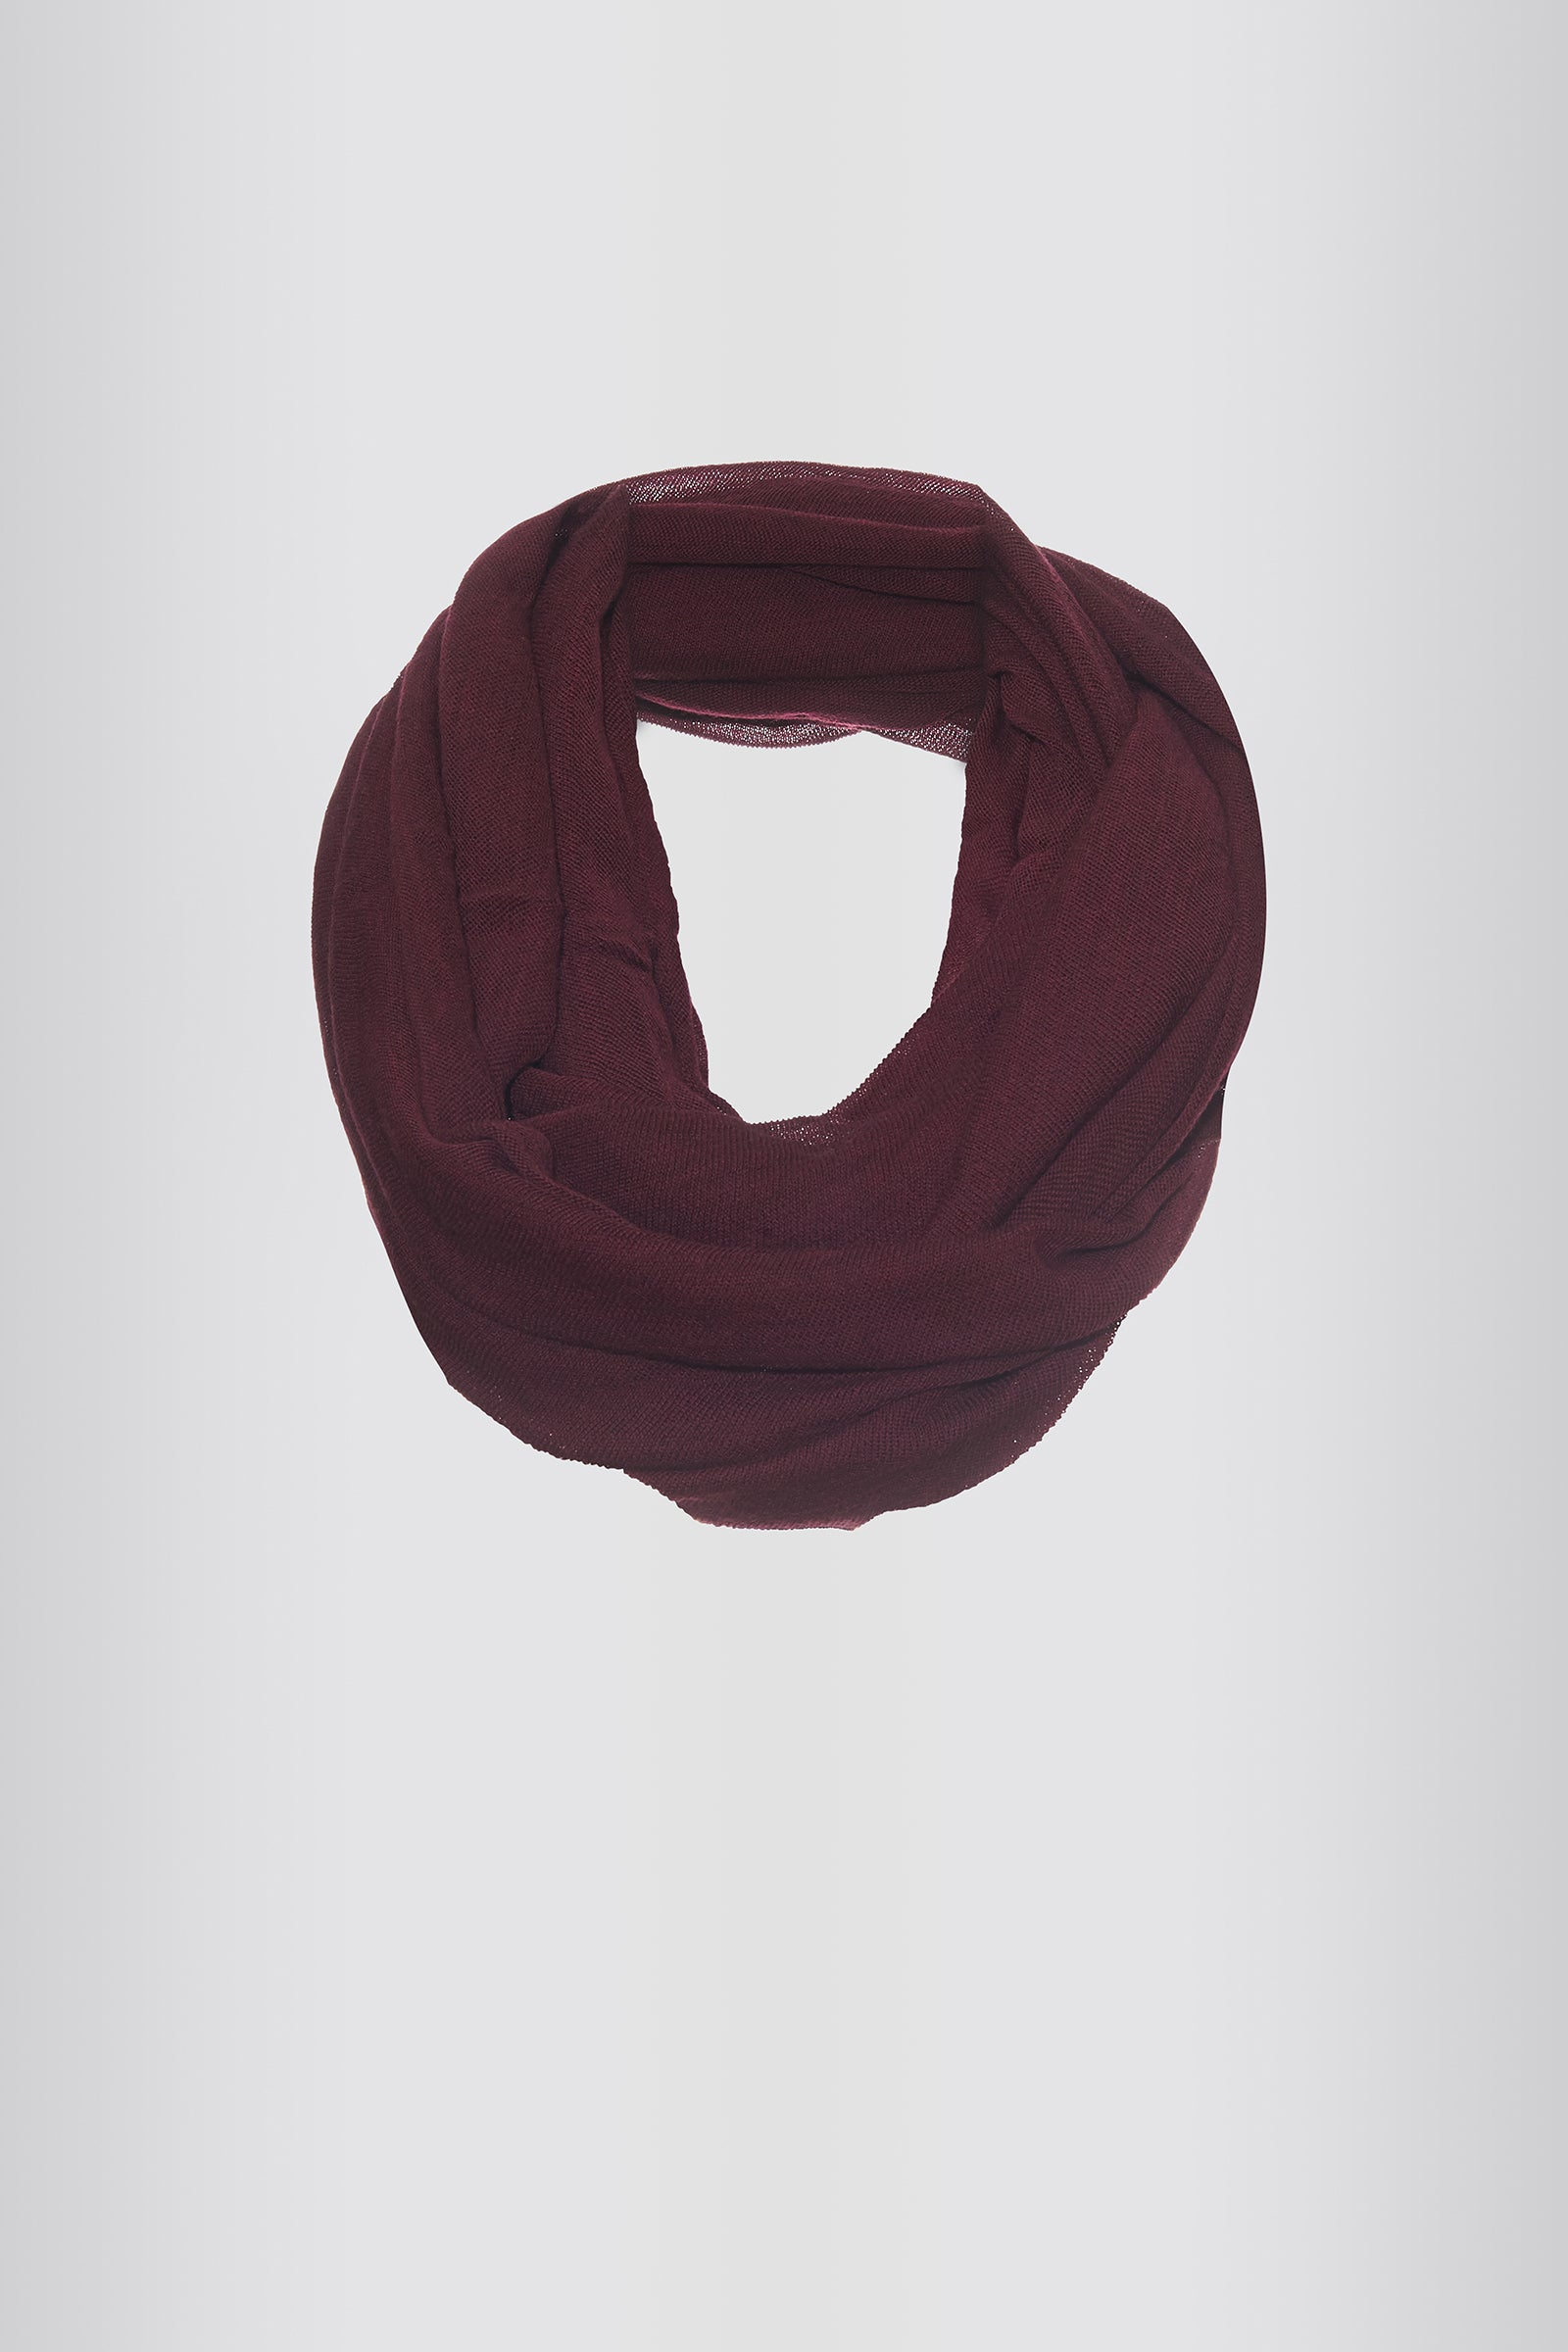 Kal Rieman Infinity Circle Scarf in Wine on Model Front View Tied